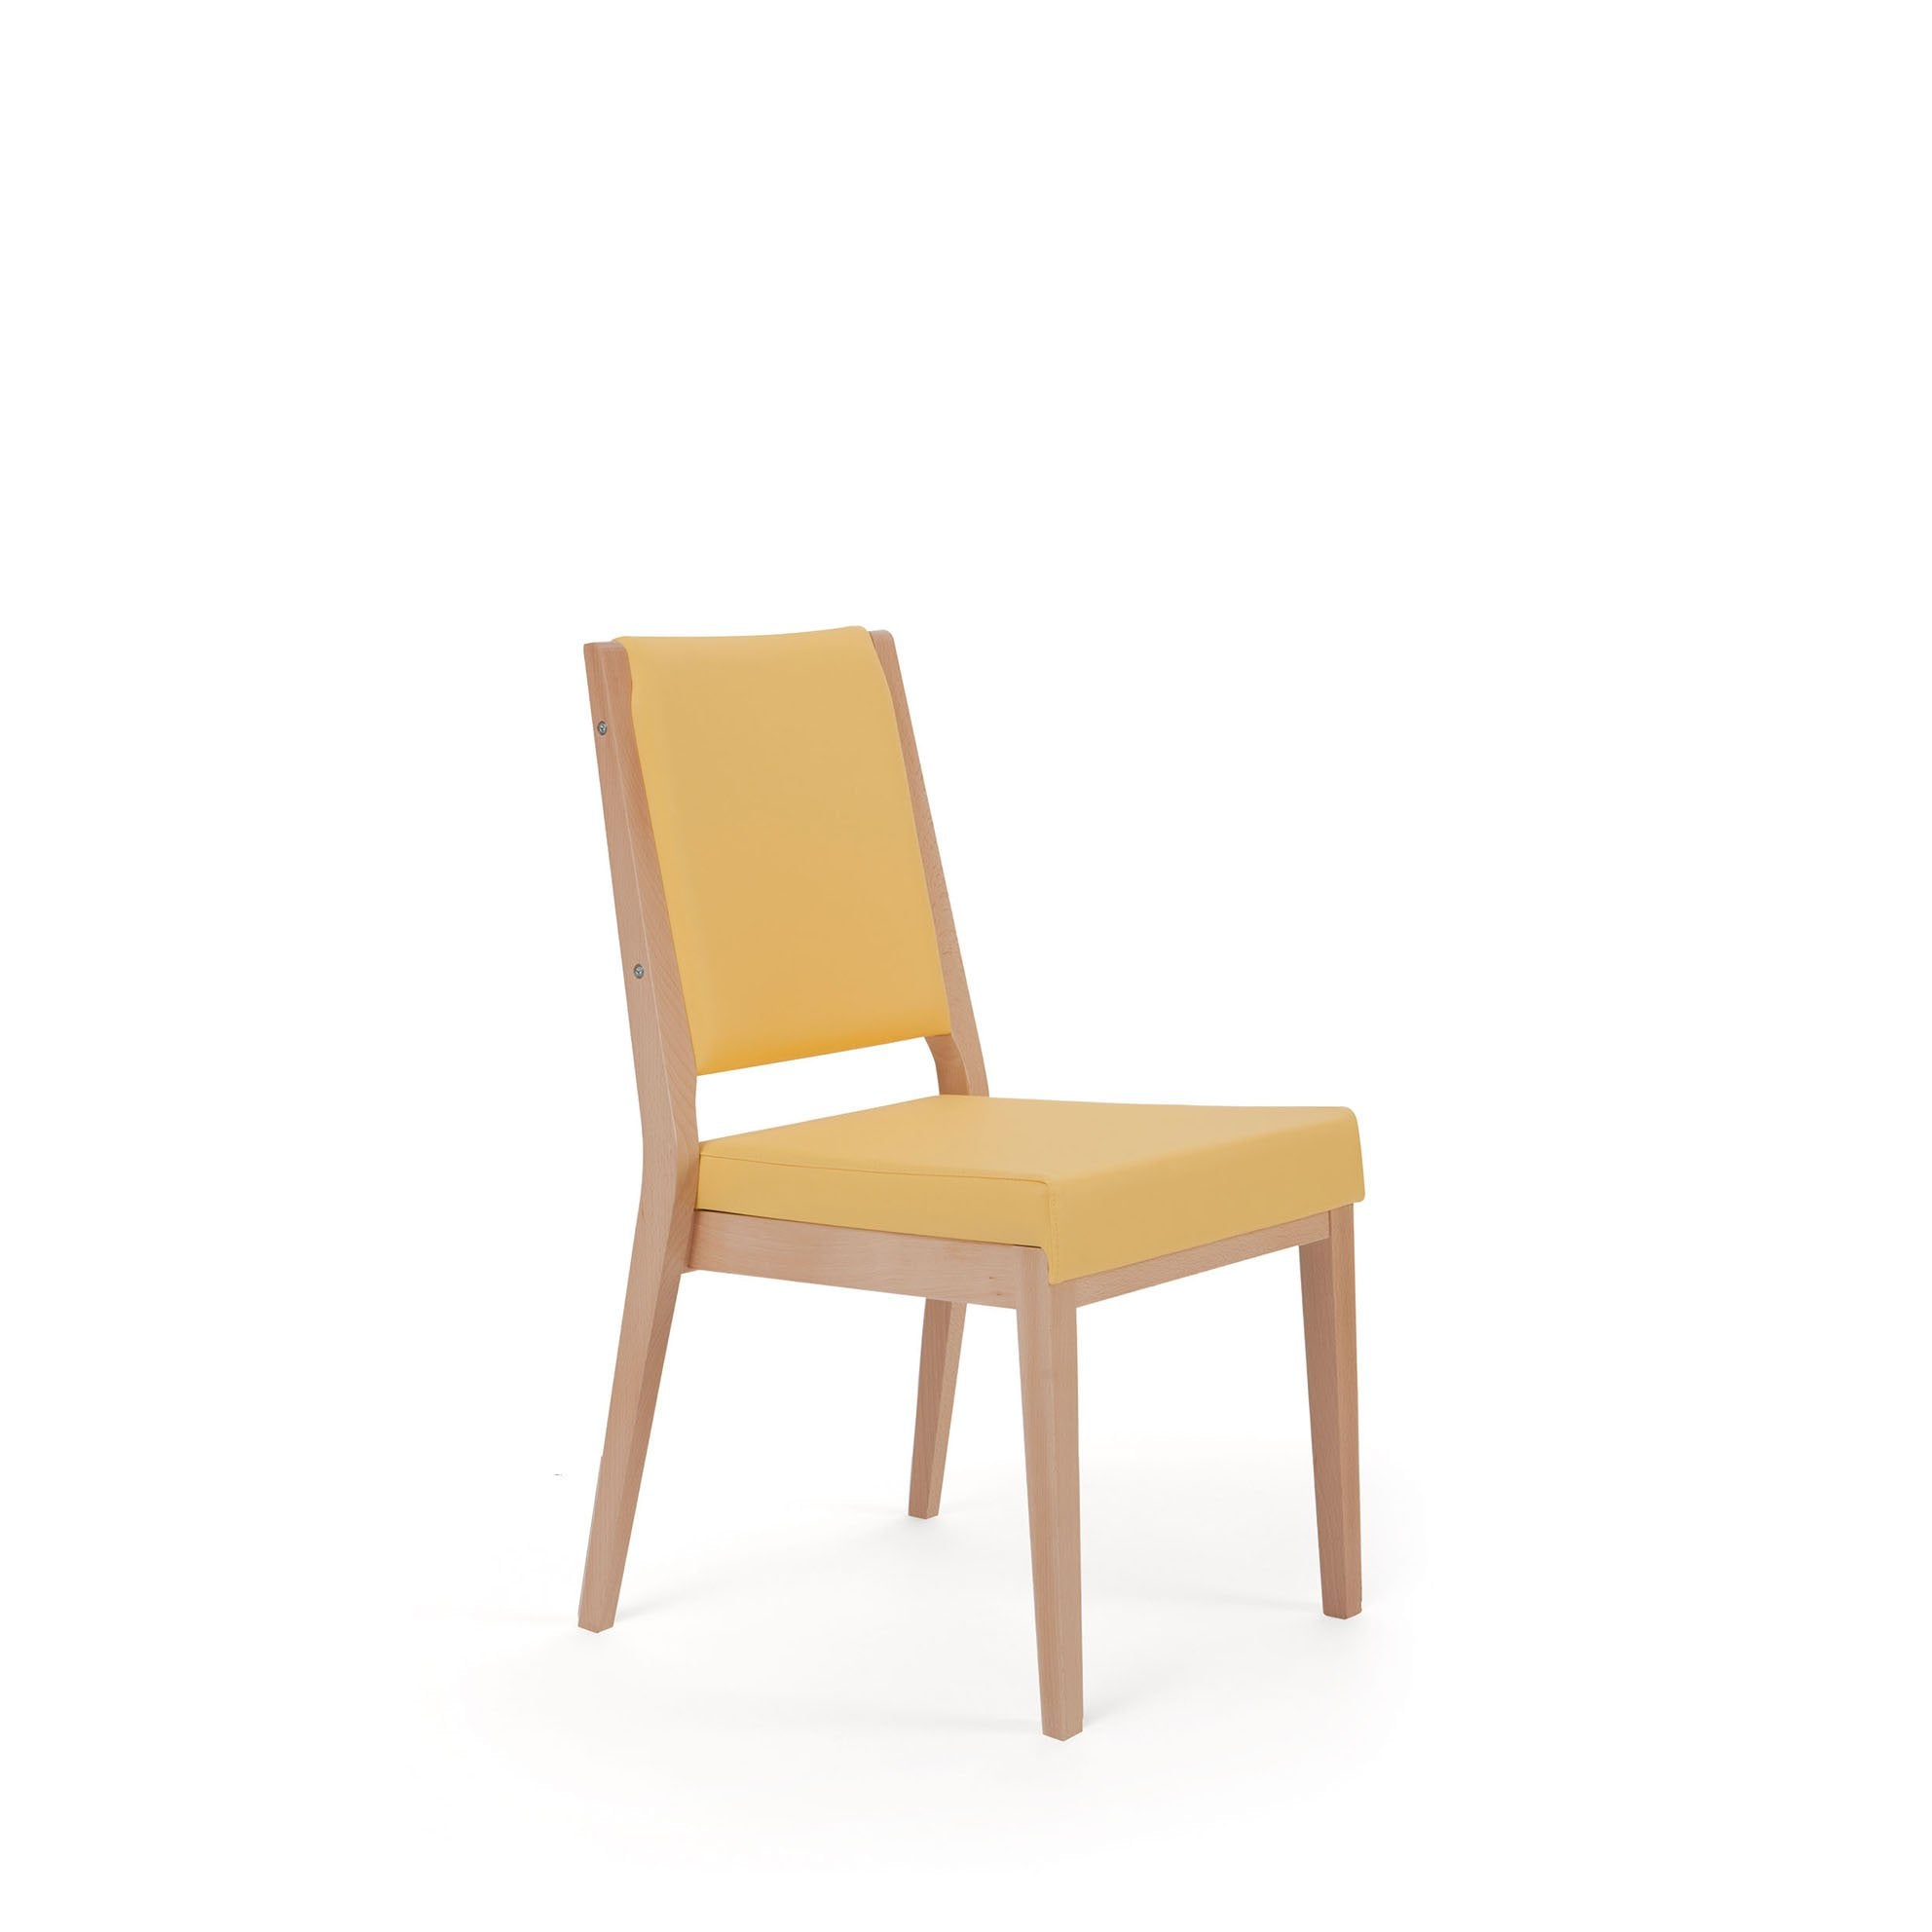 Aero 56-11/1 Side Chair-Piaval-Contract Furniture Store